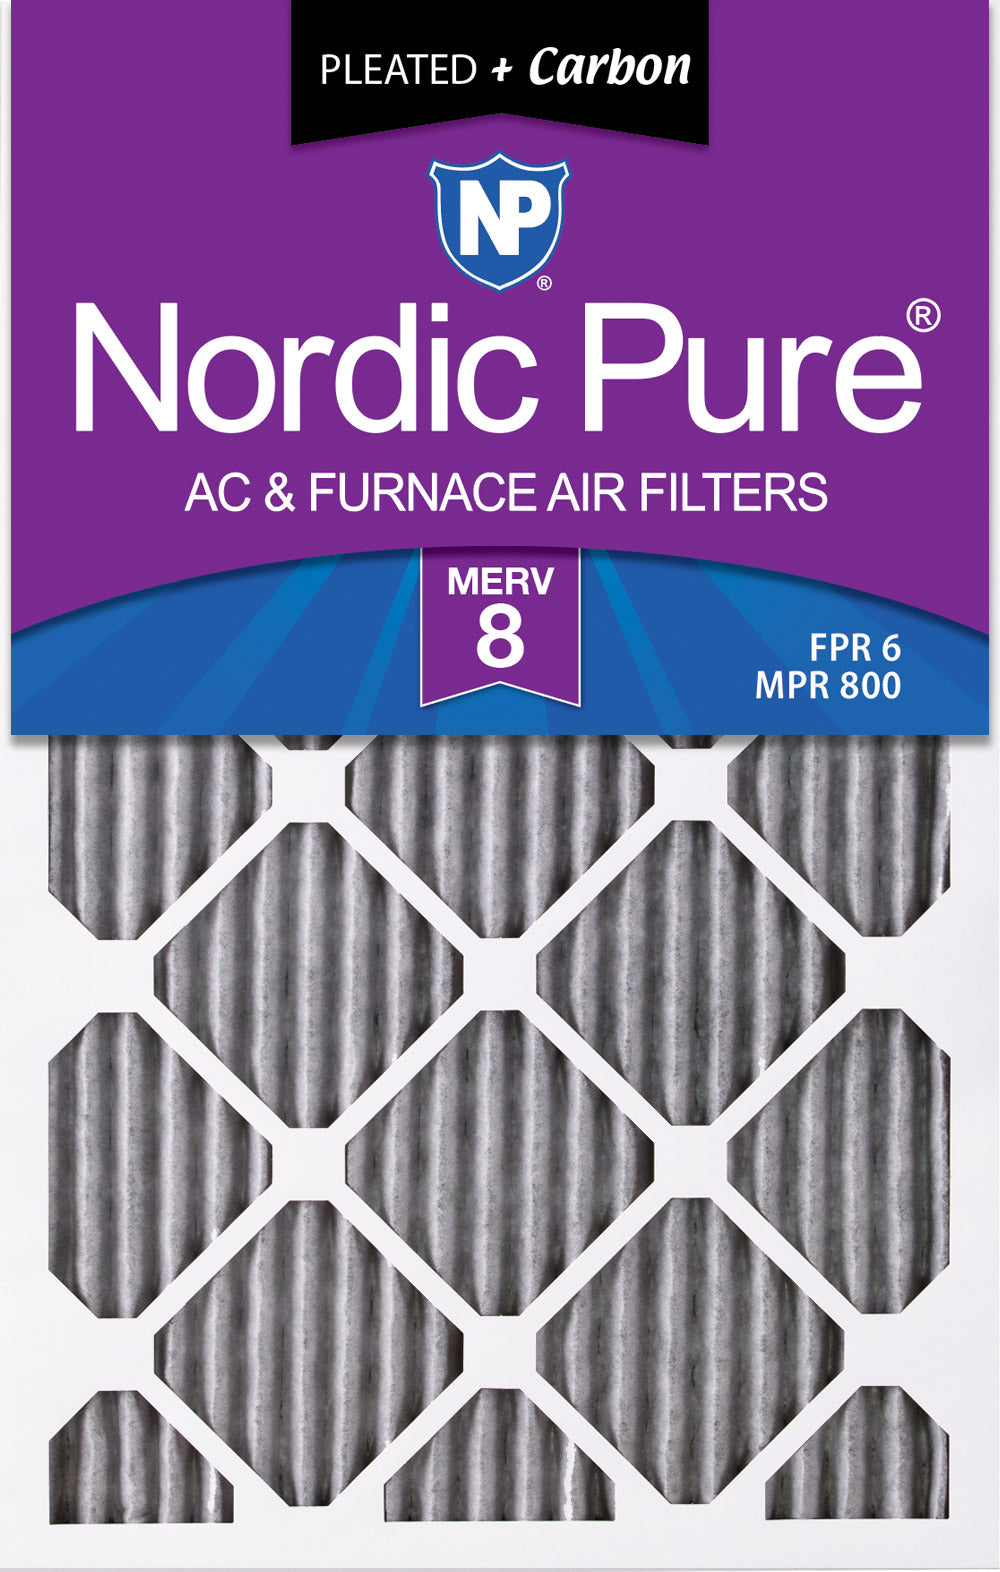 20x24x1 Furnace Air Filters MERV 8 Pleated Plus Carbon 6 Pack